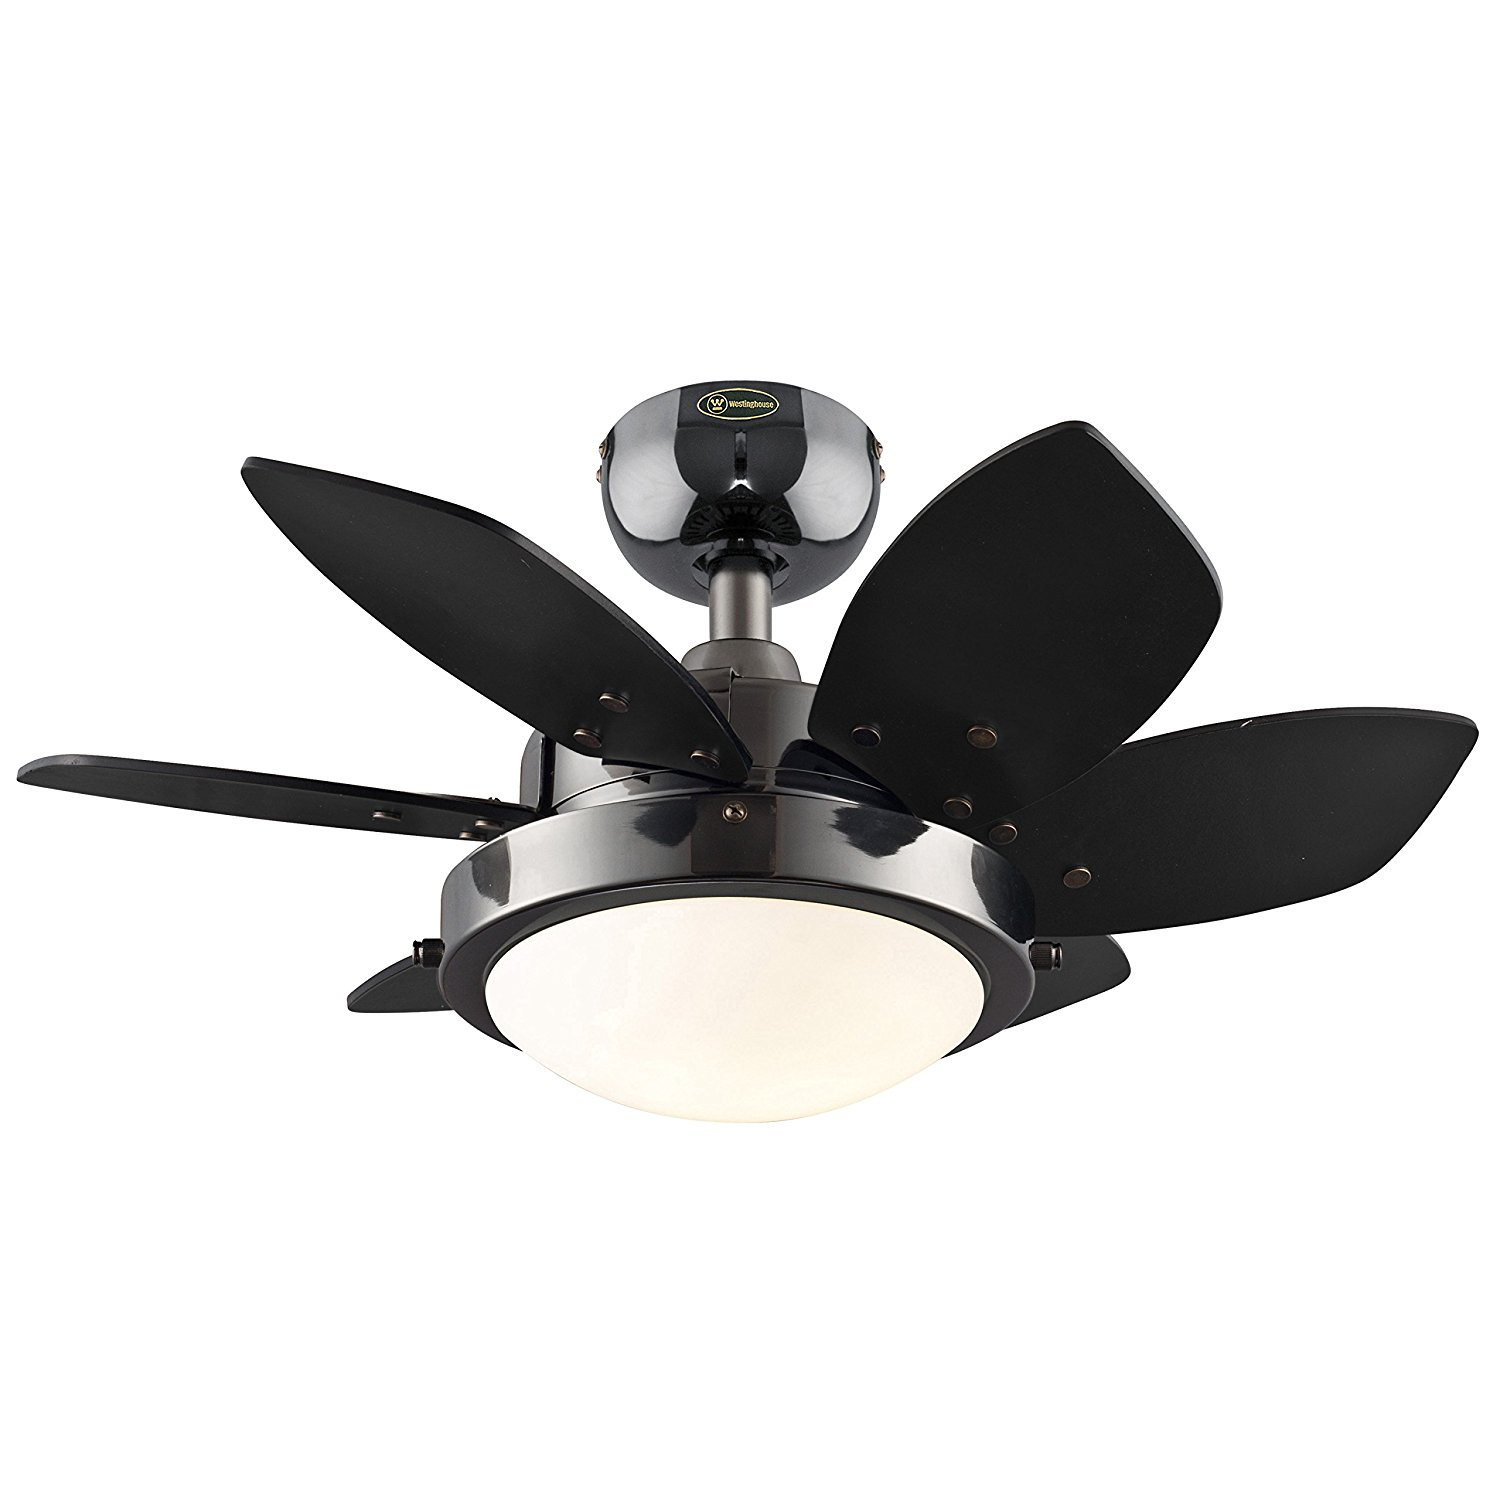 black blade free pear product garden fan ceiling home light acfd crystal bilhah inch